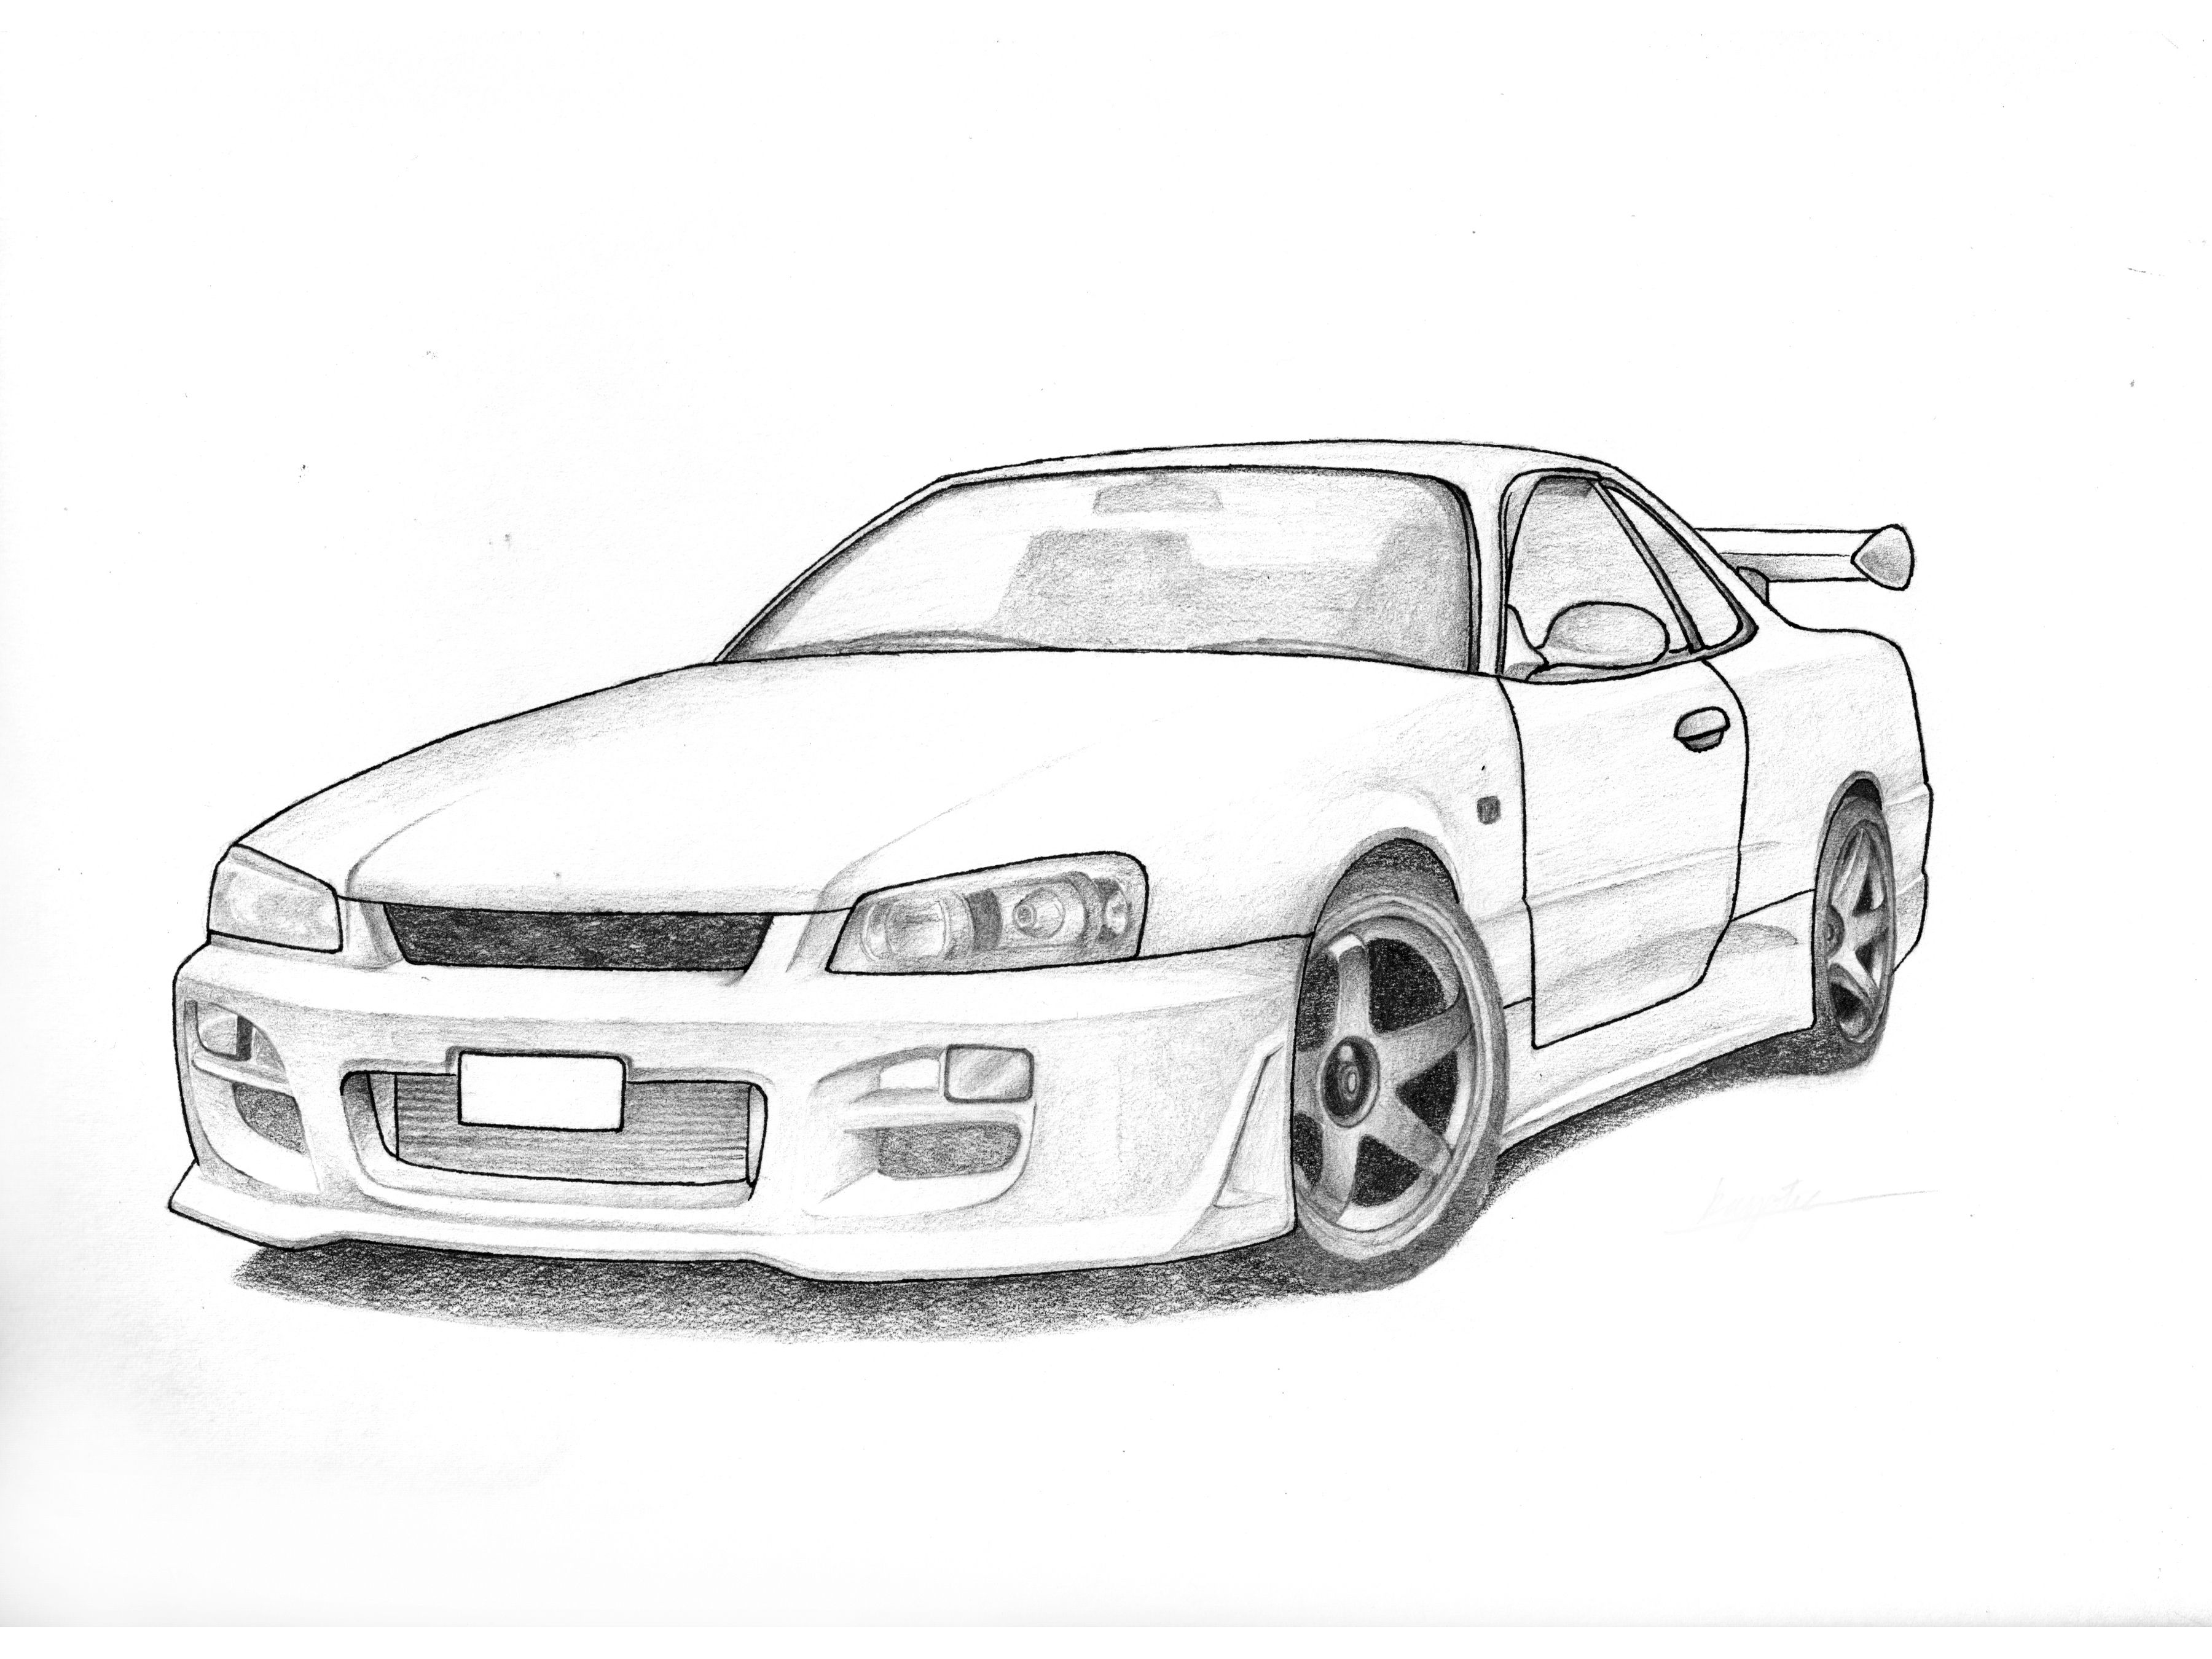 18 Jerry He Grade 12 Nissan R34 Skyline Pencil And